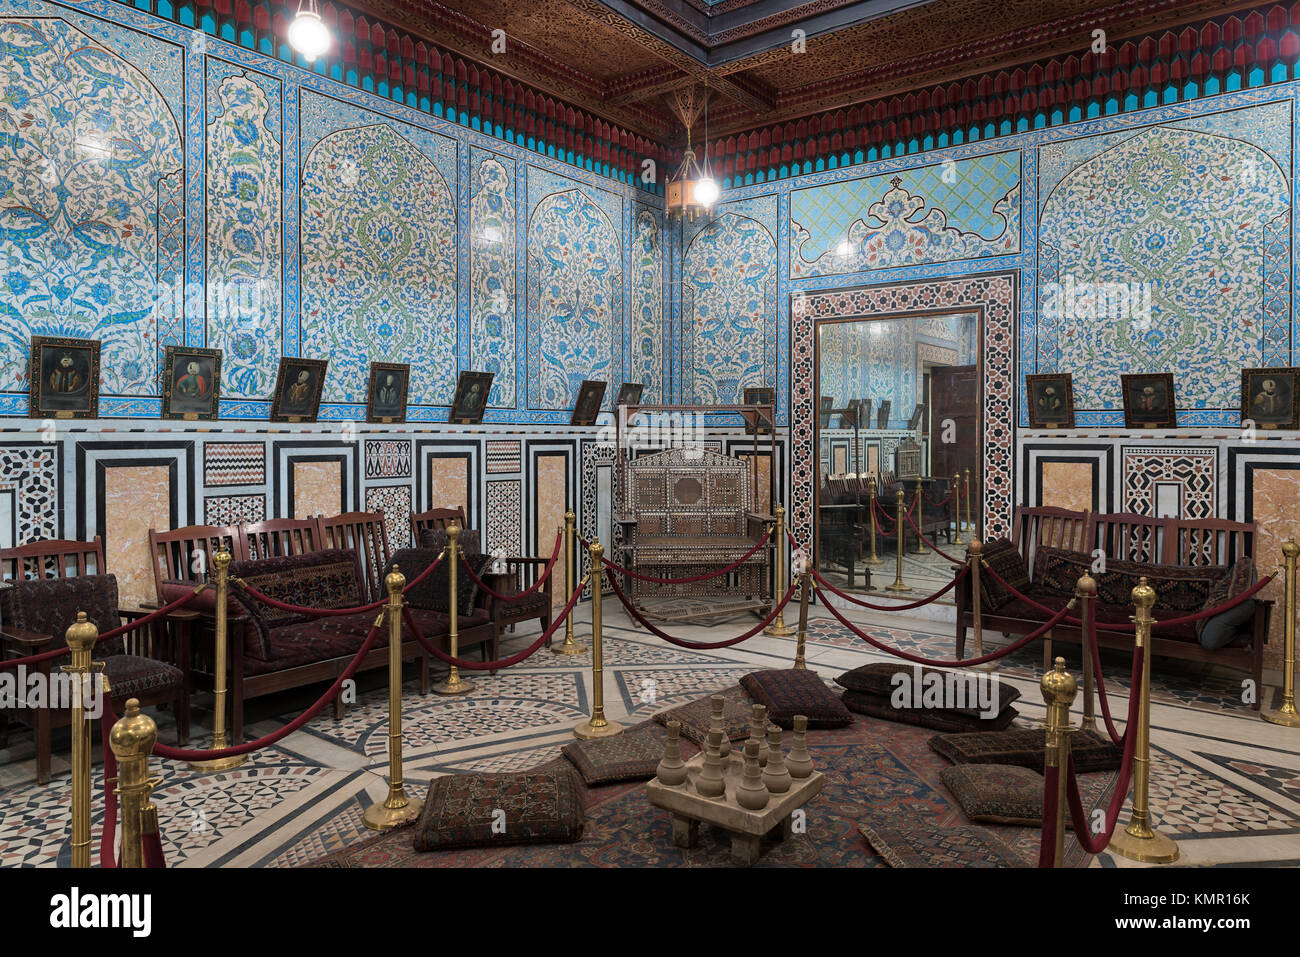 Cairo, Egypt - December 2 2017: Manial Palace of Prince Mohammed Ali. The mirrors room at the residence building - Stock Image